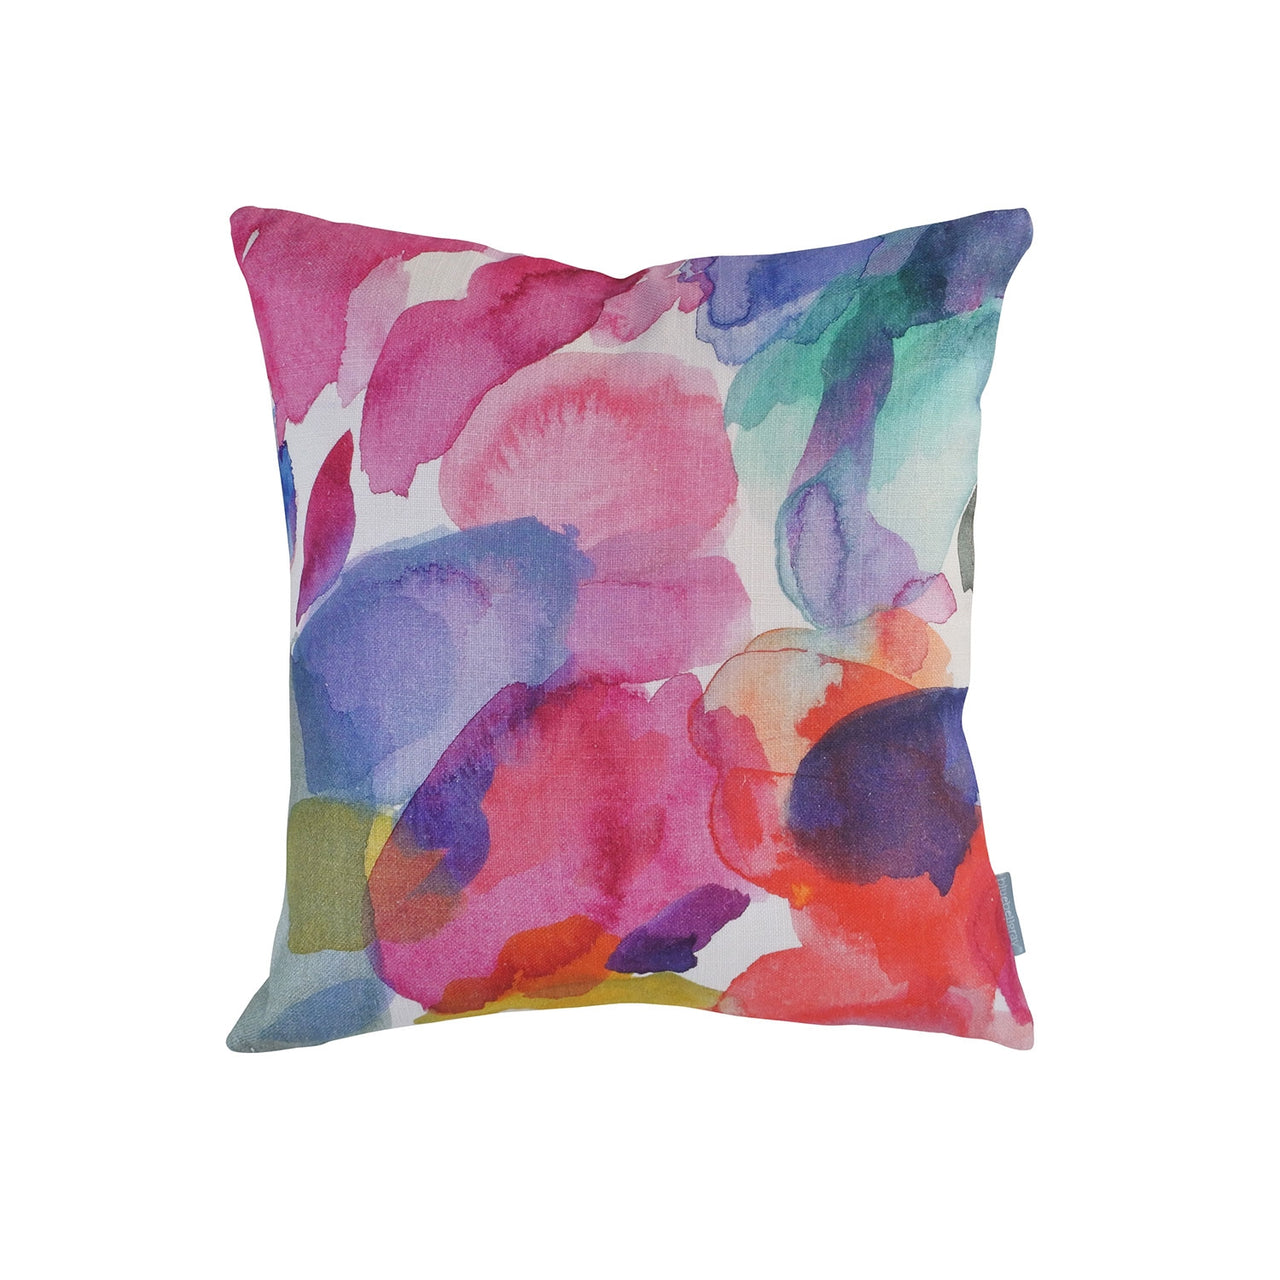 Sienna Cushion